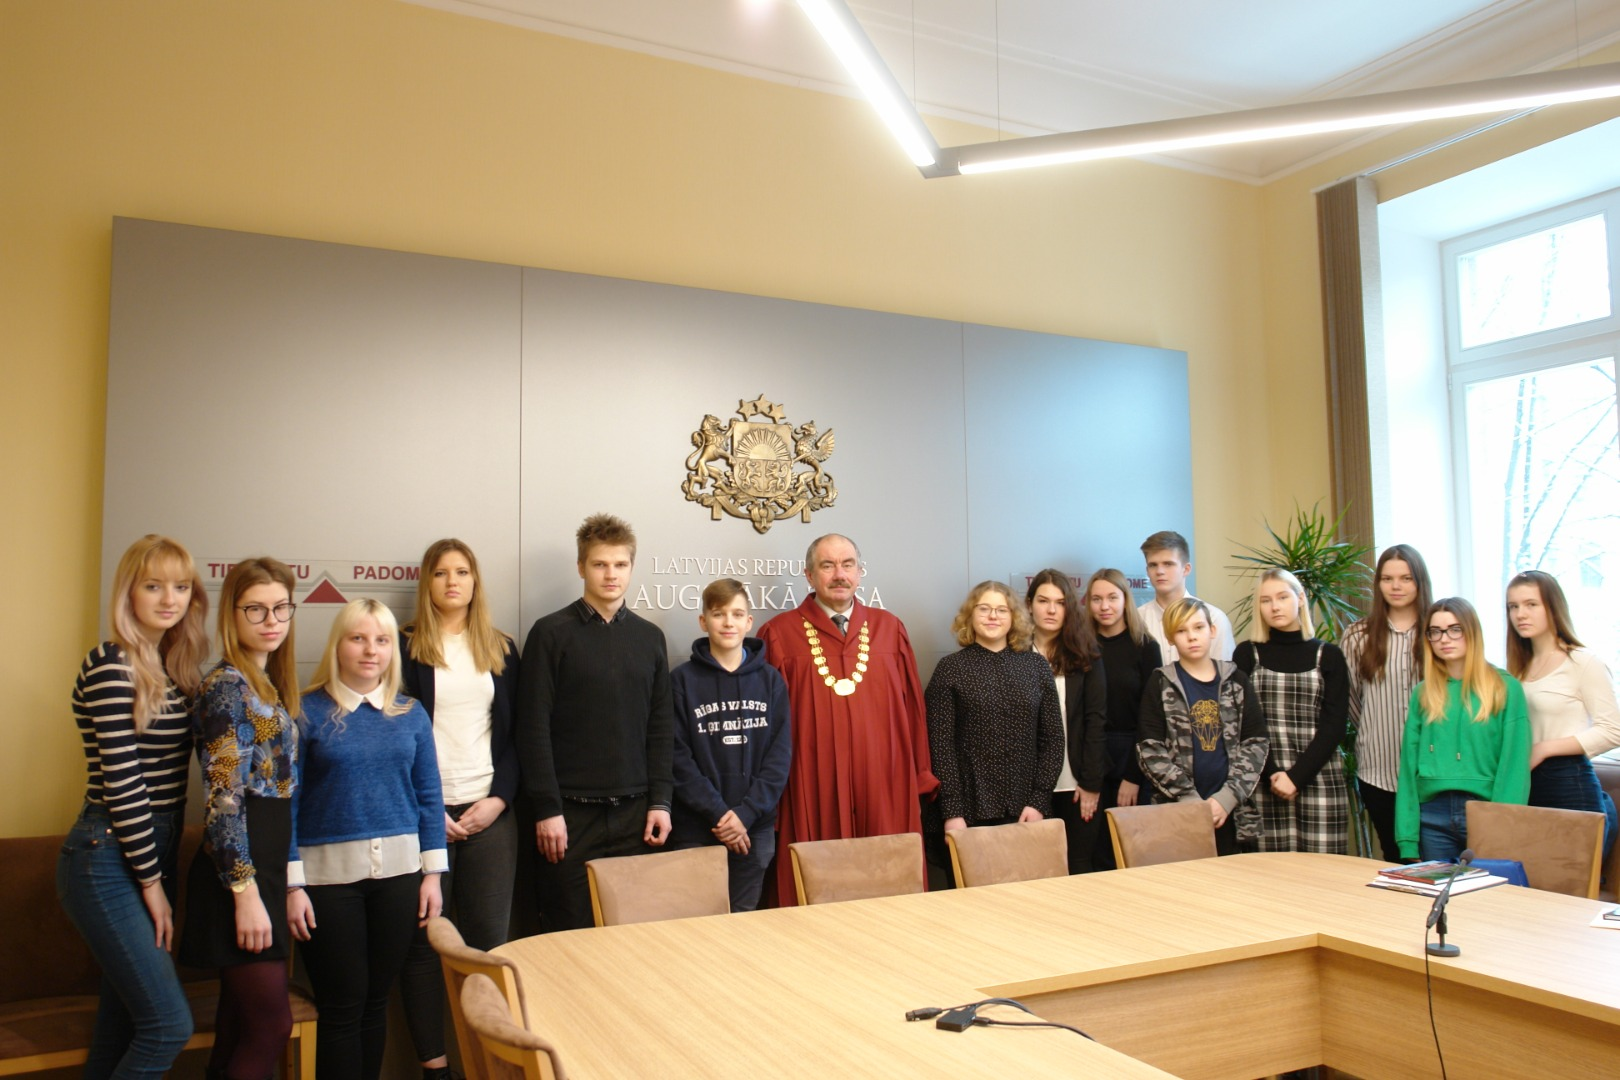 At the conclusion of the Shadow Day, a photoshoot with Chief Justice Ivars Bickovics